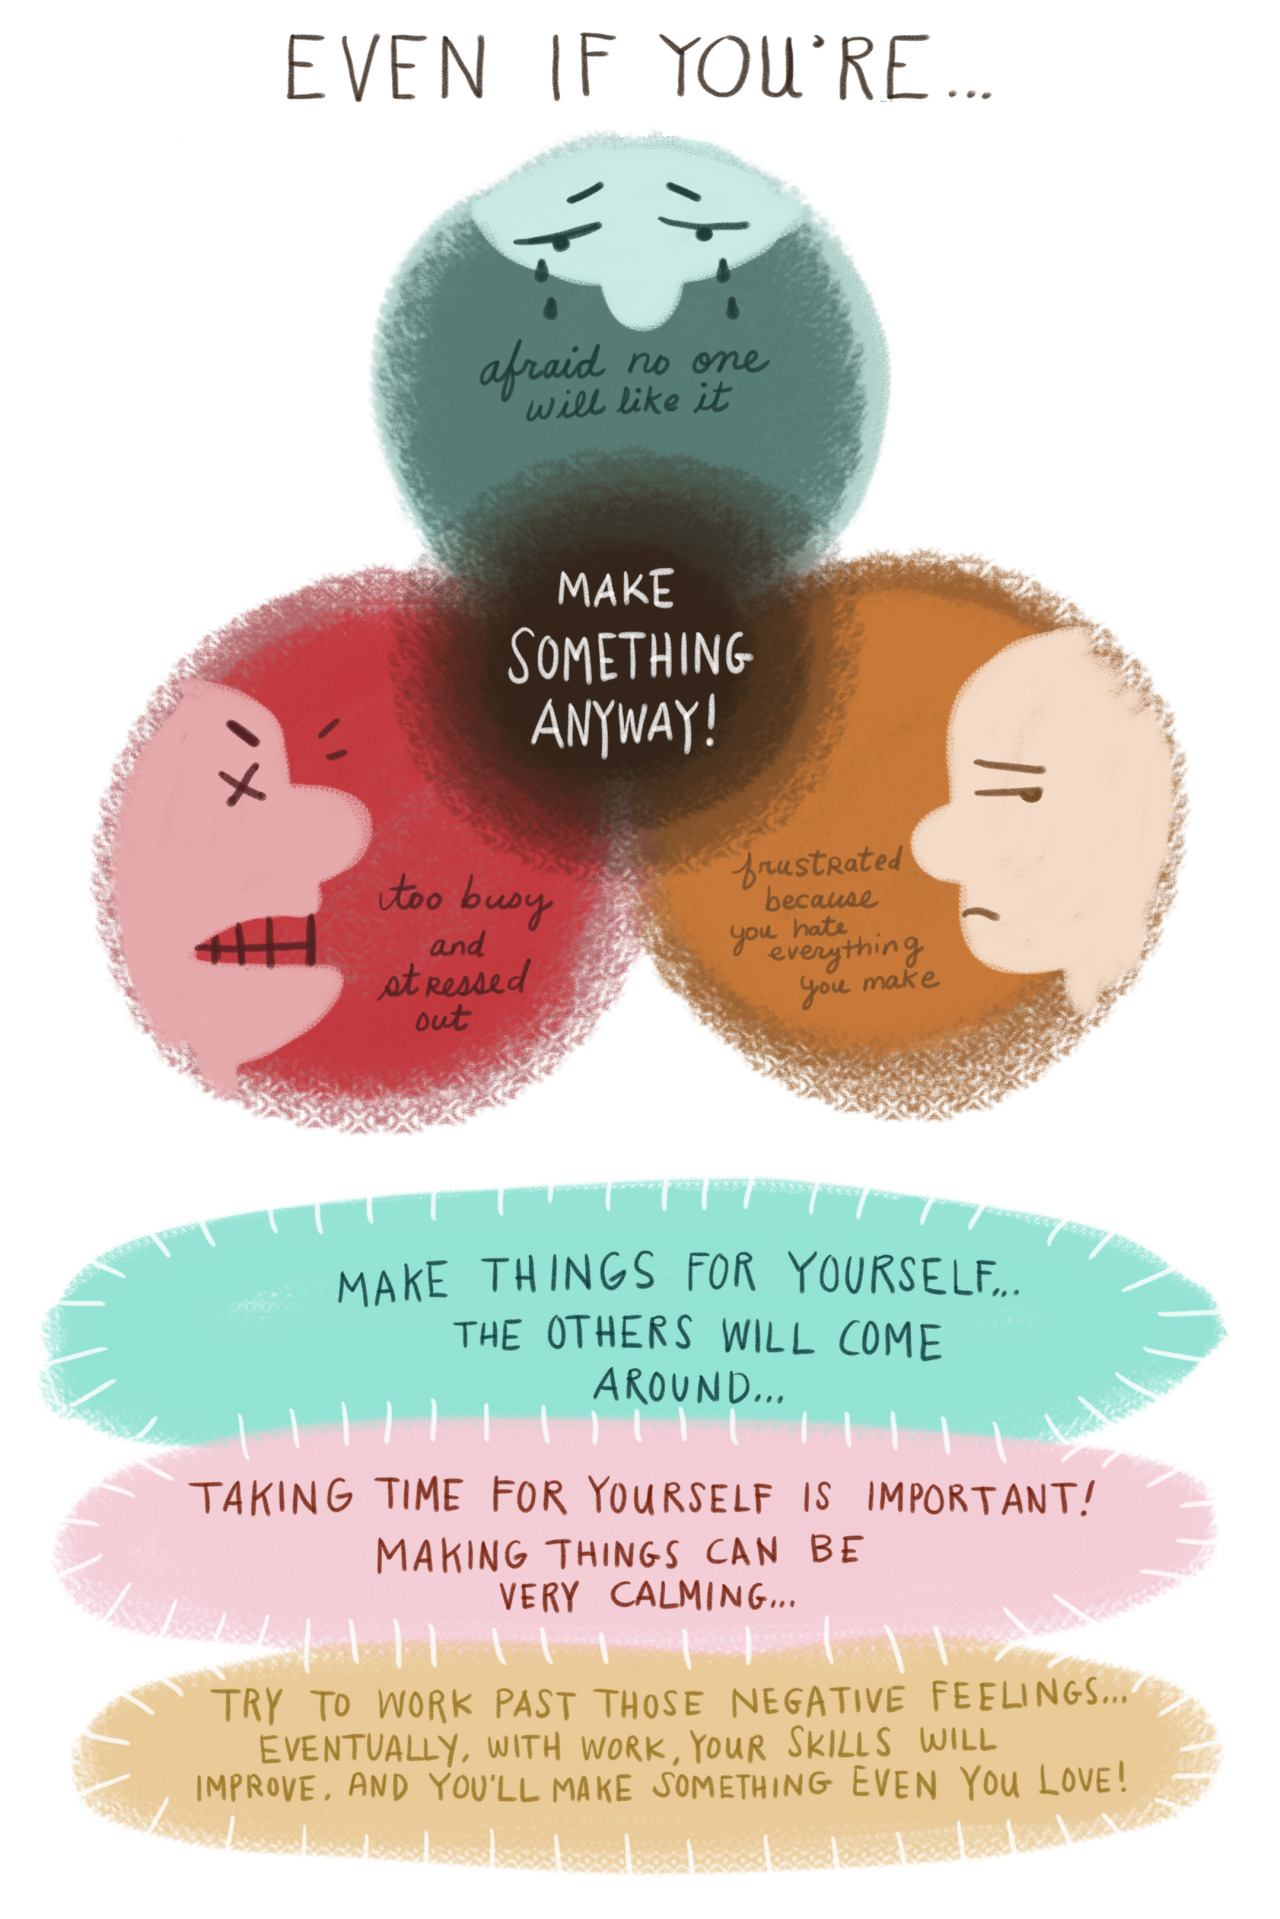 kimjimagery:  potatofarmgirl:  natashakline:  For all the artists out there. xoxo  I agree with Natasha!  Make stuff even if it HURTS! <3  ………..